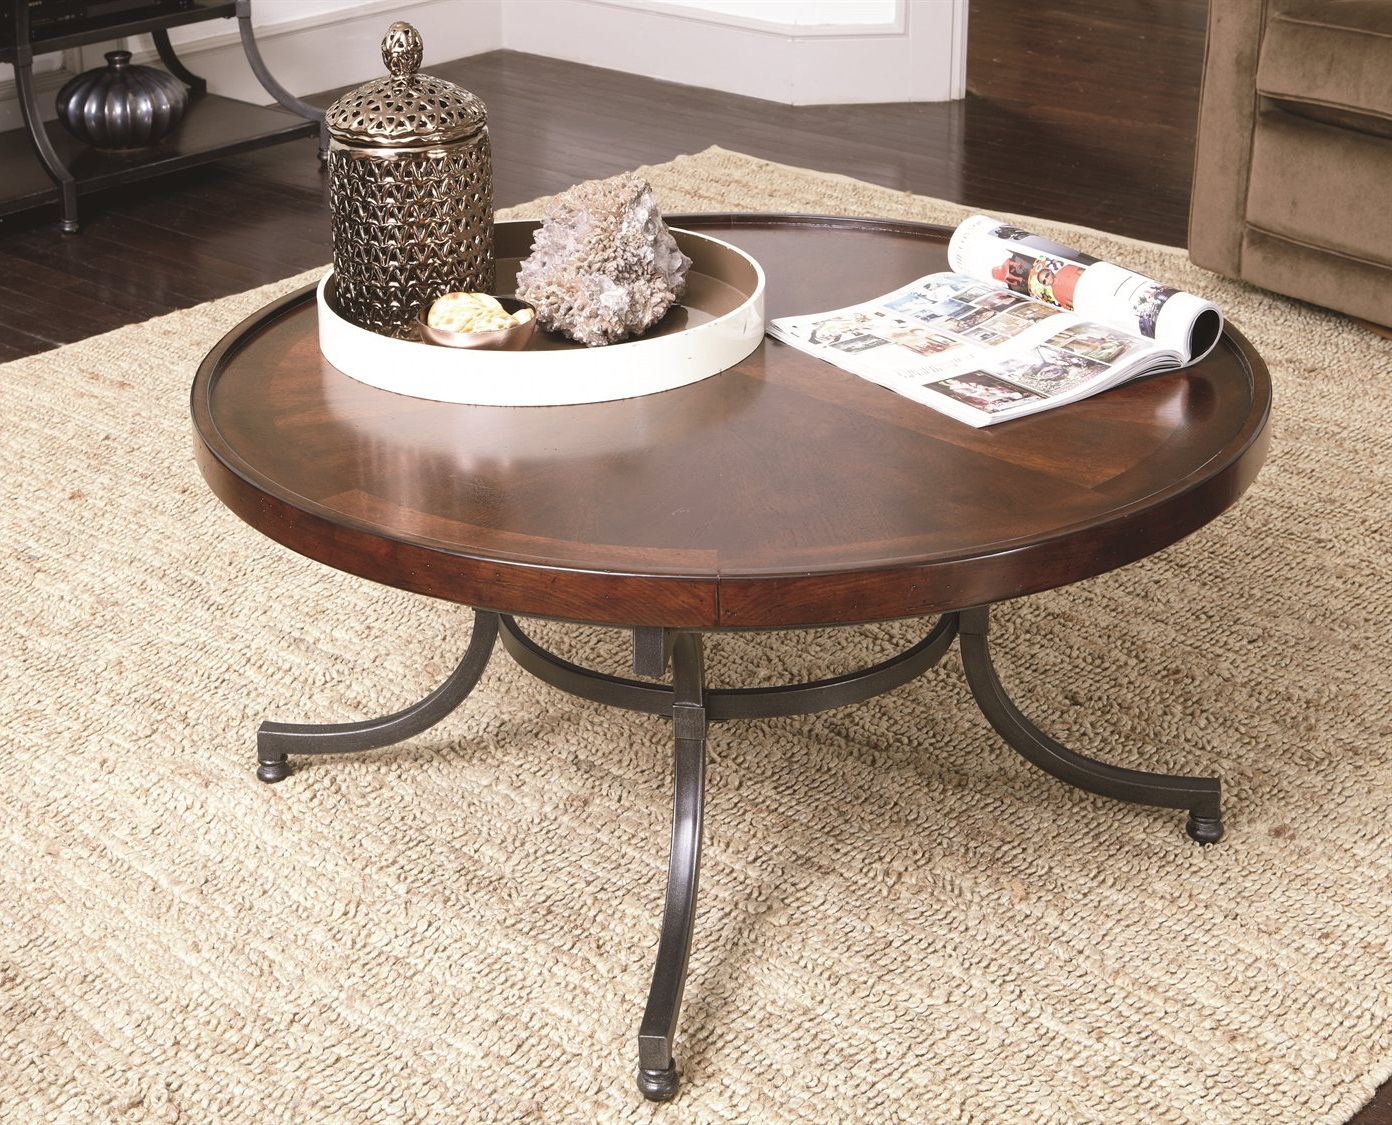 30 inch round coffee table 05